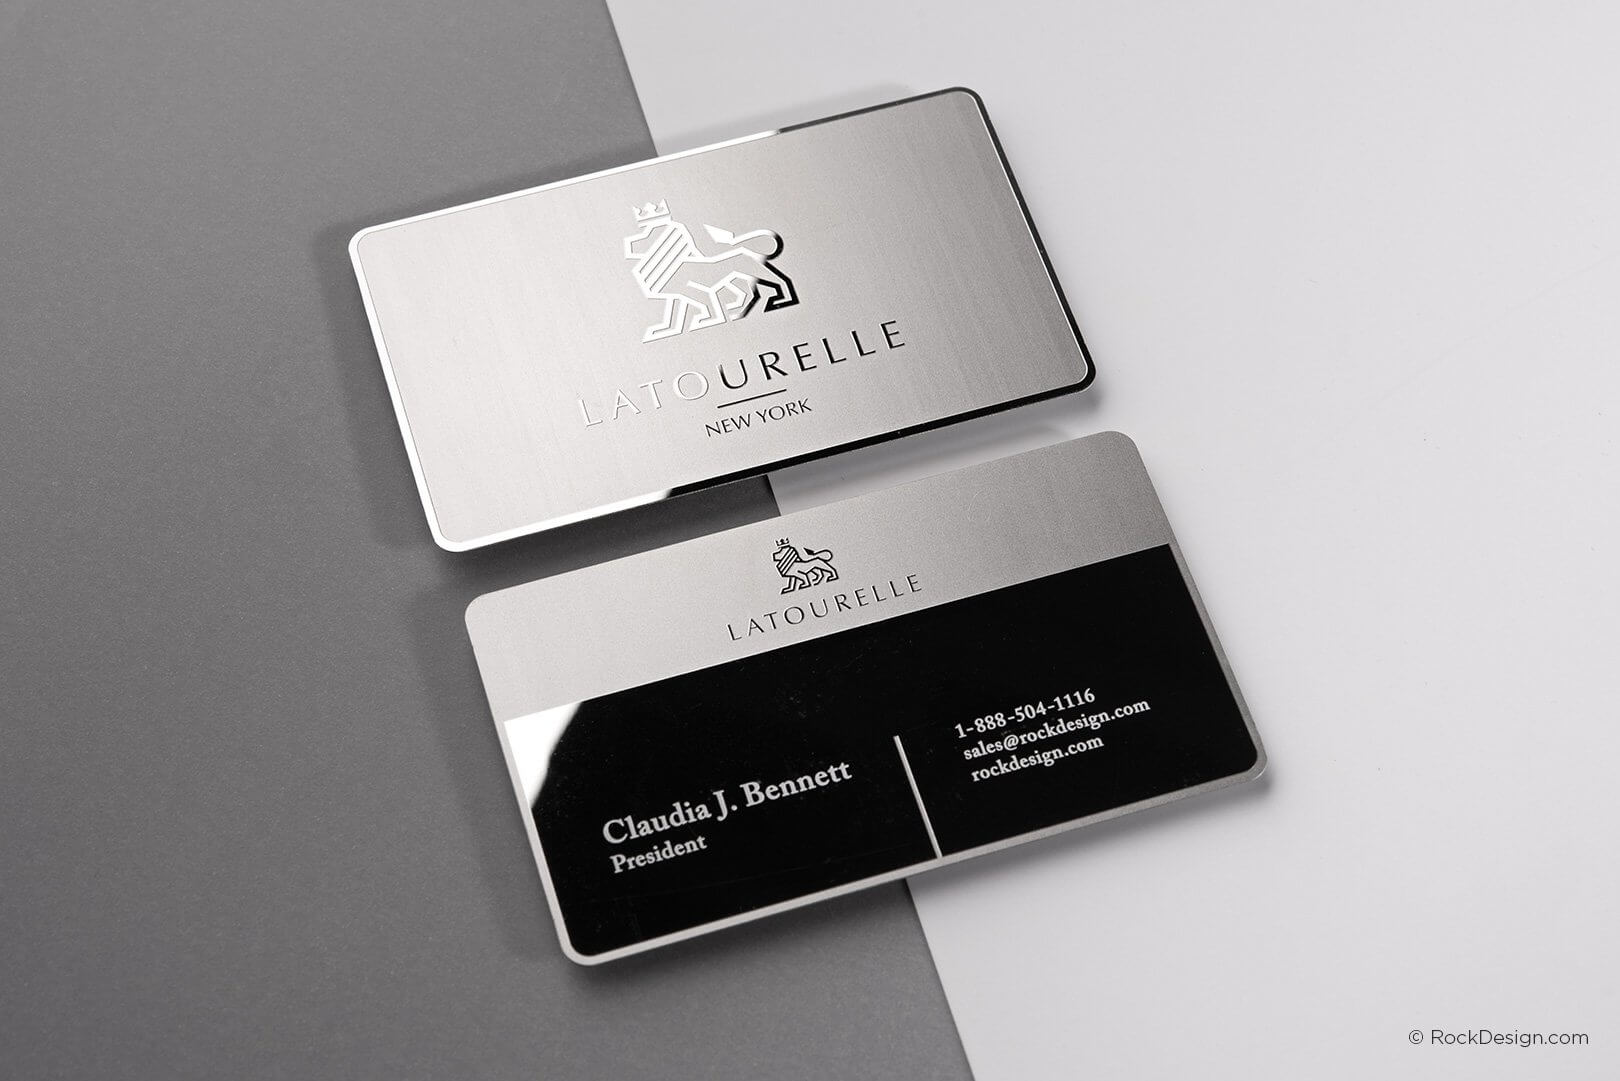 Free Lawyer Business Card Template | Rockdesign Within Lawyer Business Cards Templates